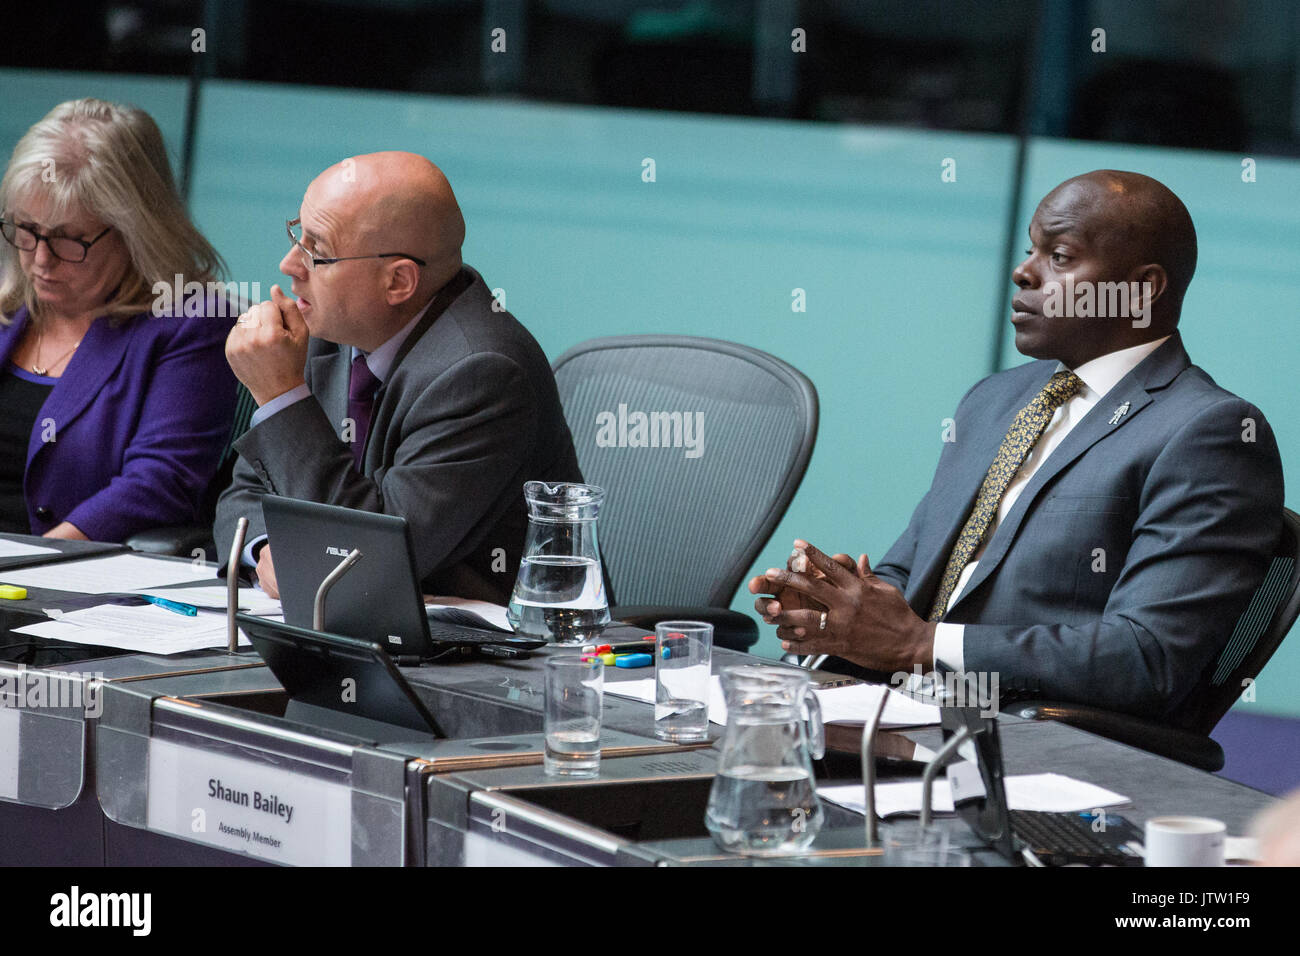 London, UK. 10th August, 2017. London Assembly Members Susan Hall, Keith Prince and Shaun Bailey listen to Mayor of London Sadiq Khan responding to questions during Mayor's Question Time at City Hall. Among topics discussed were: acid attacks, social housing, expenditure on fire and police services, 4G coverage on underground trains and noise from overnight underground trains. Credit: Mark Kerrison/Alamy Live News - Stock Image